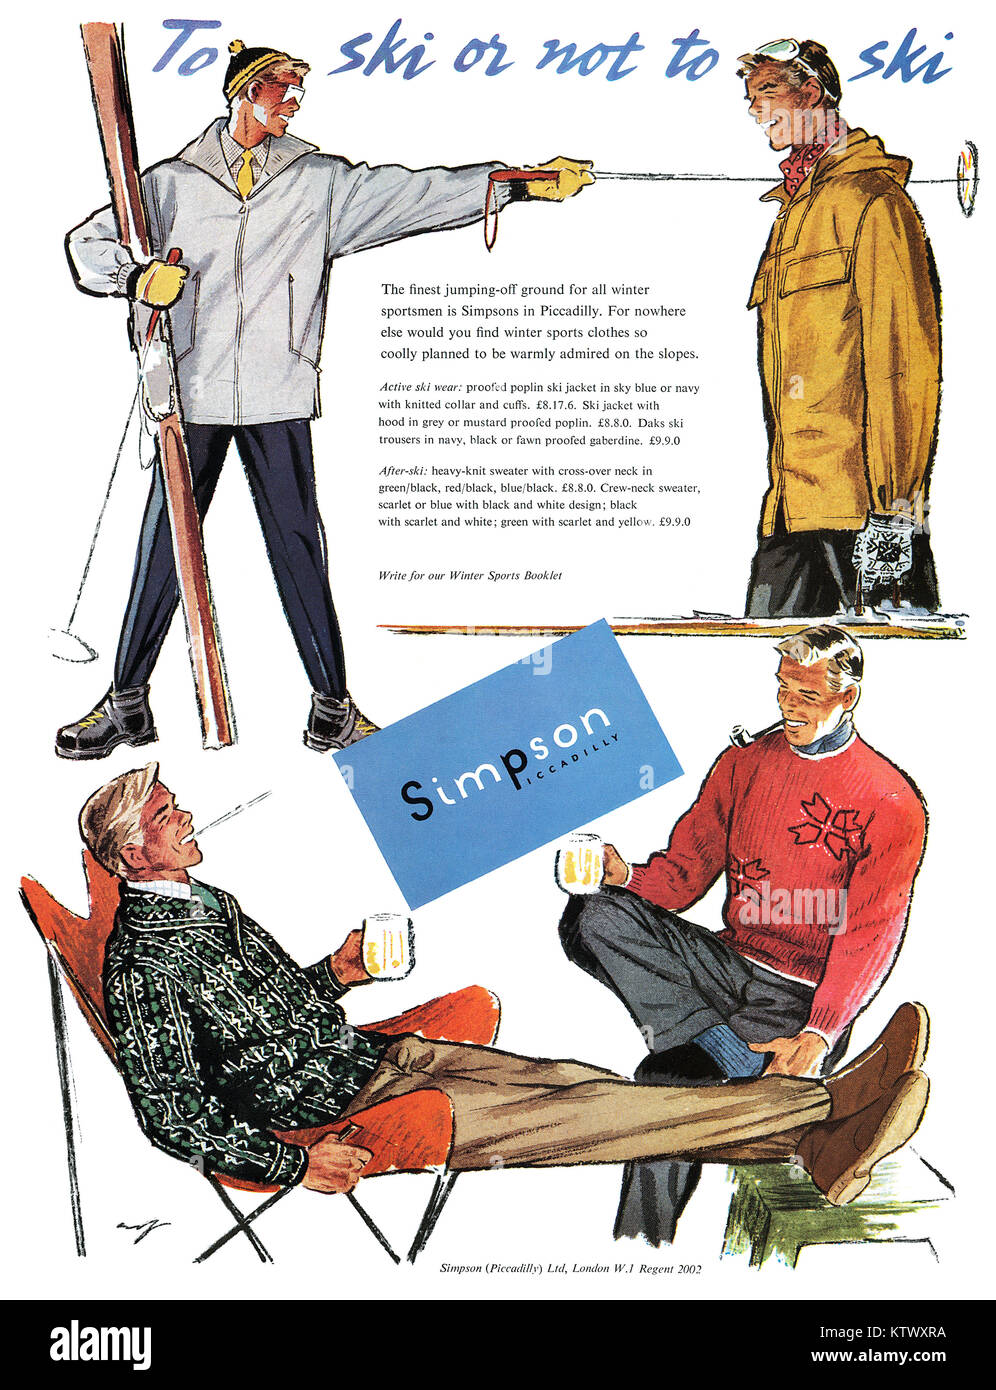 1954 British advertisement for Simpsons of Piccadilly. - Stock Image